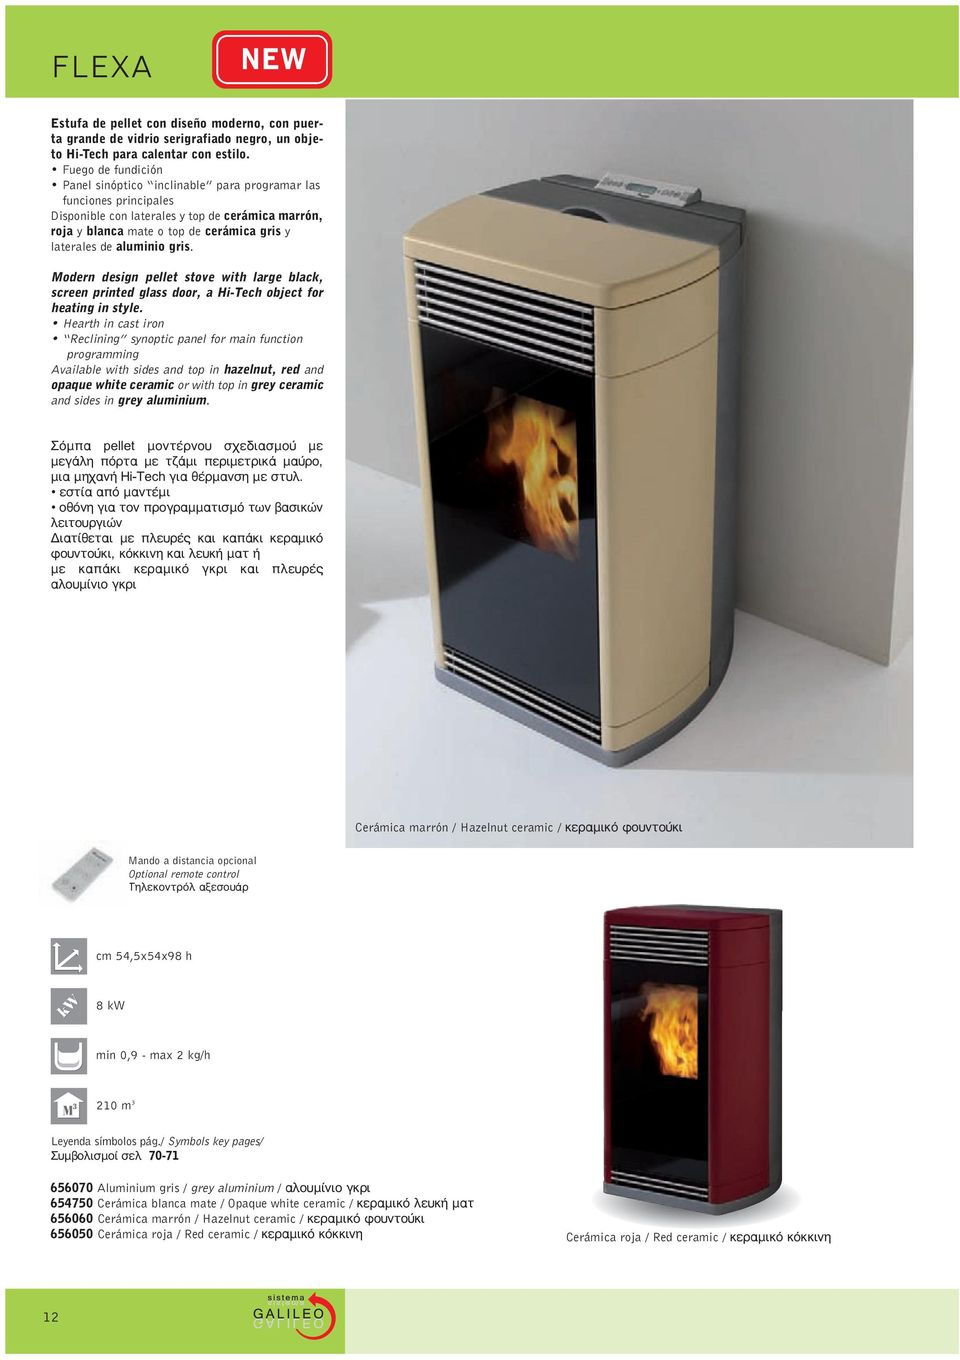 aluminio gris. Modern design pellet stove with large black, screen printed glass door, a Hi-Tech object for heating in style.